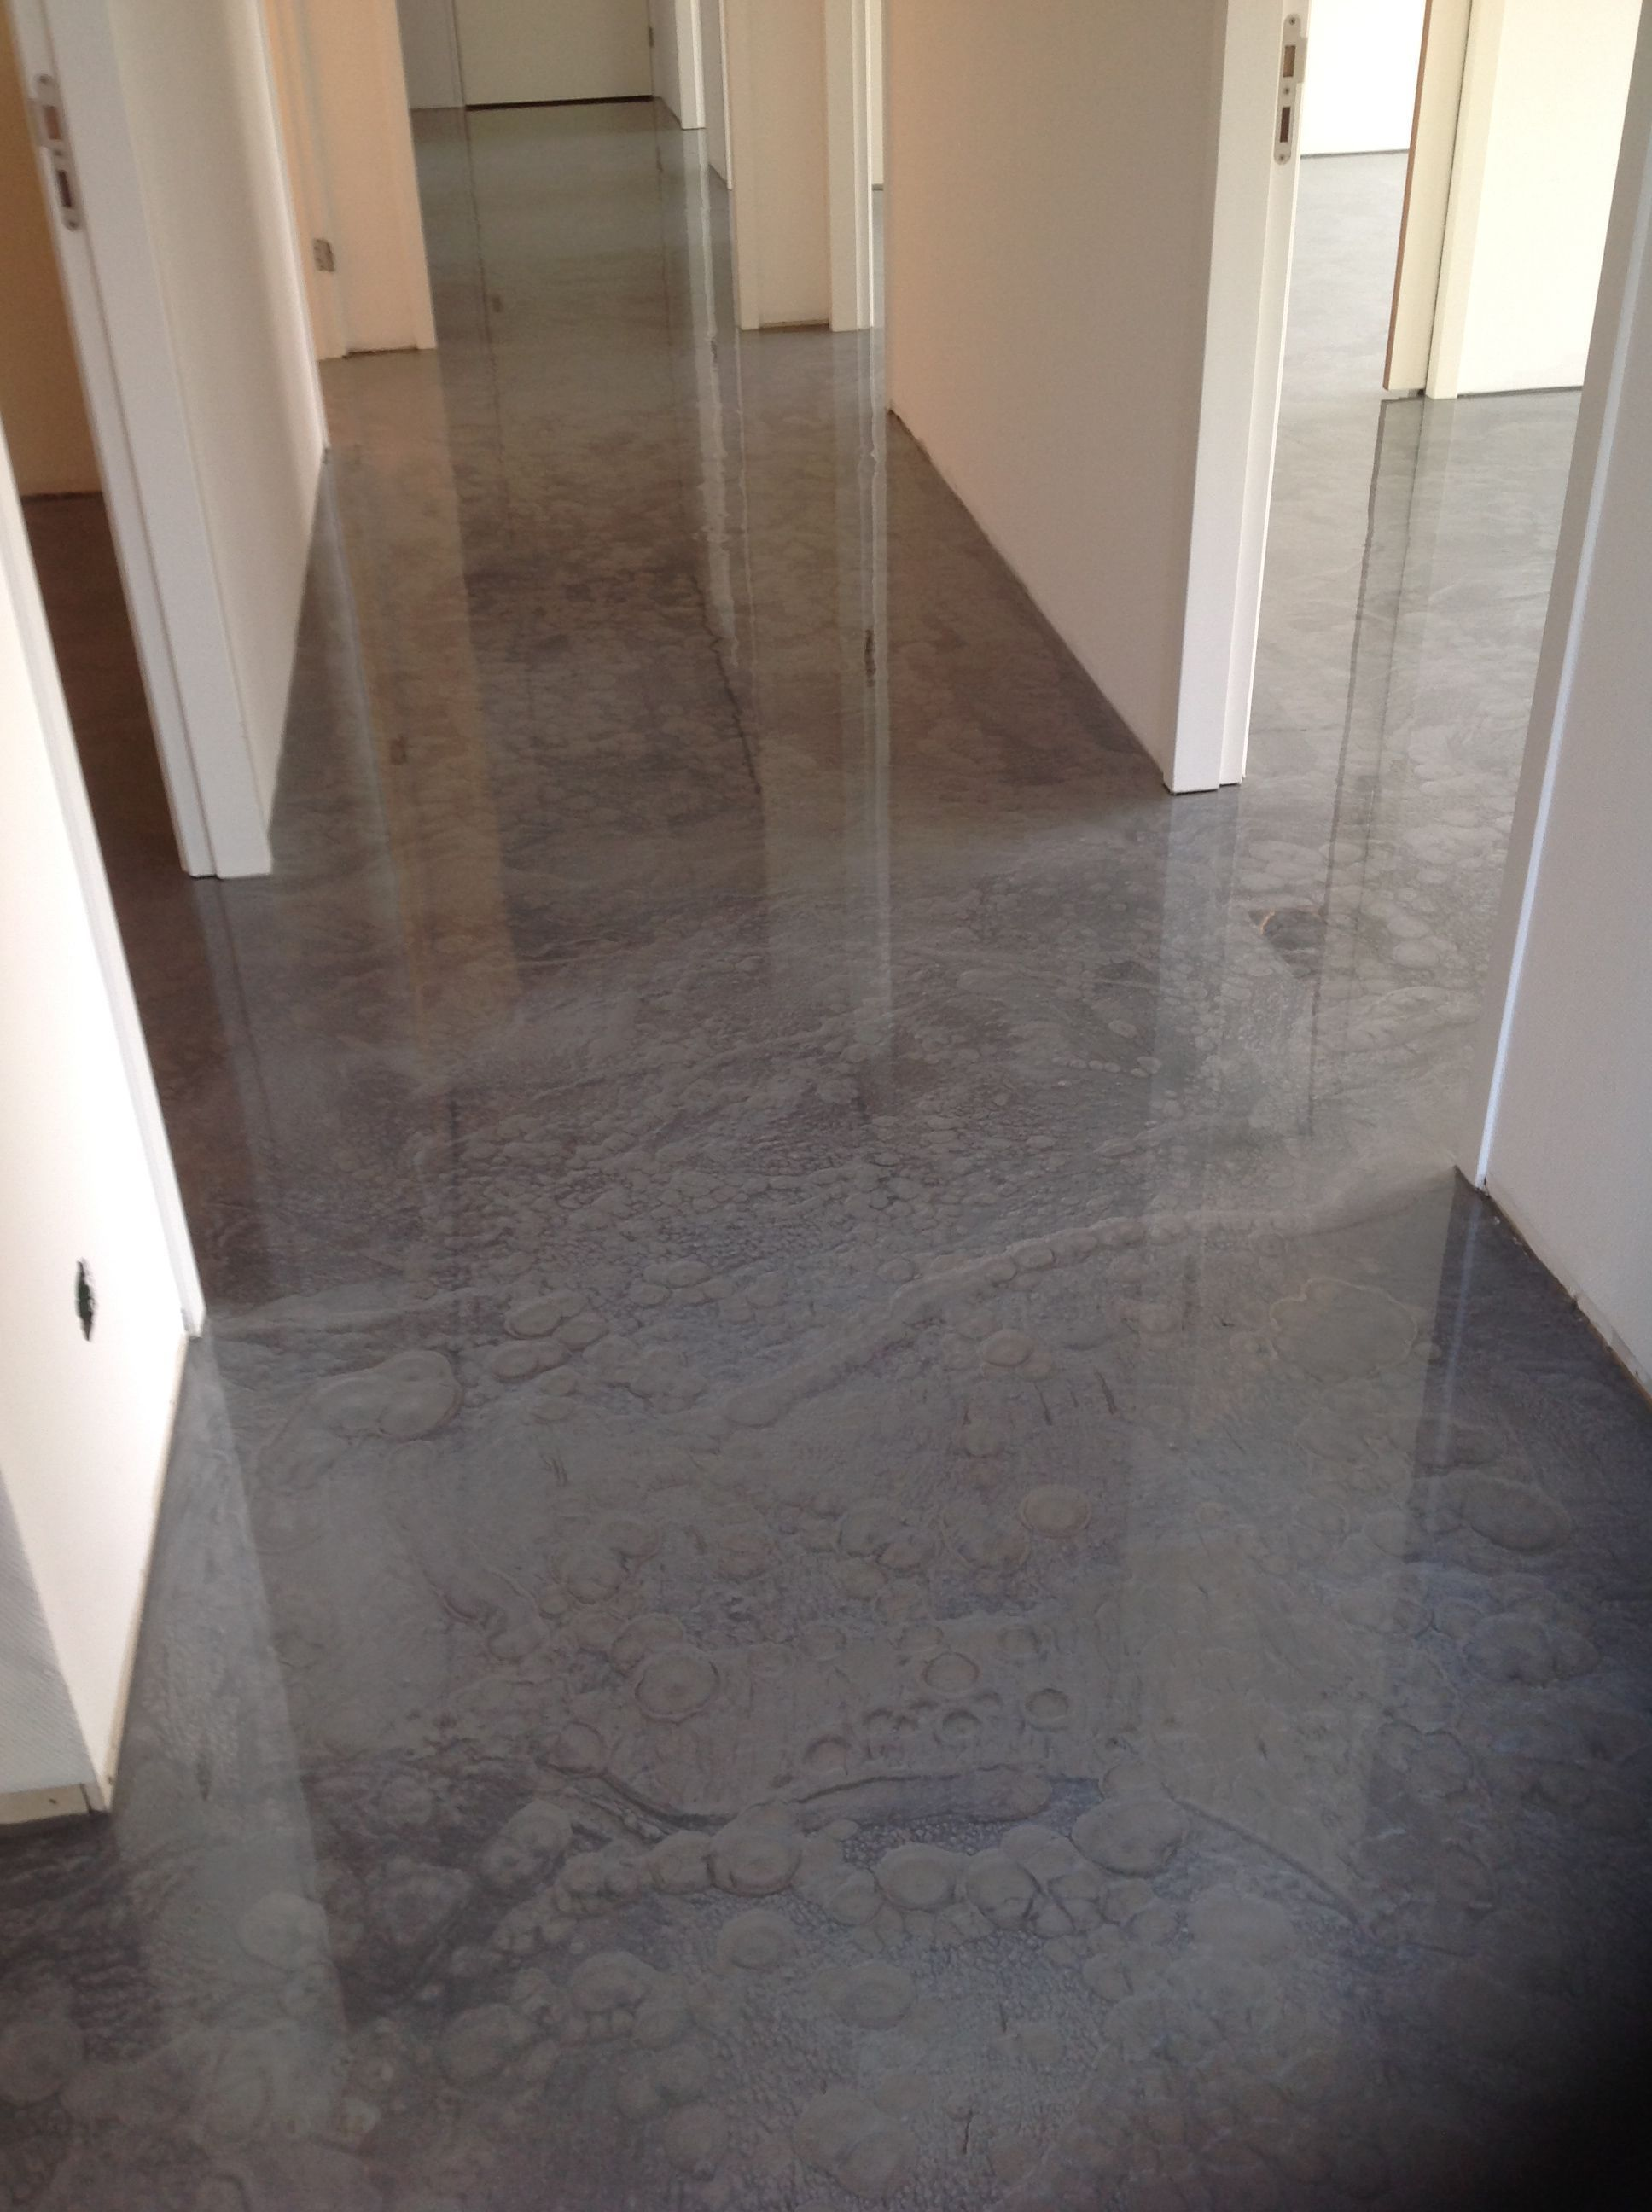 Resin Kitchen Floorresin Kitchen Floor Ever End Up Within The Kitchen At A House Event Or By Way Of The Vacati Epoxy Resin Flooring Flooring Kitchen Flooring